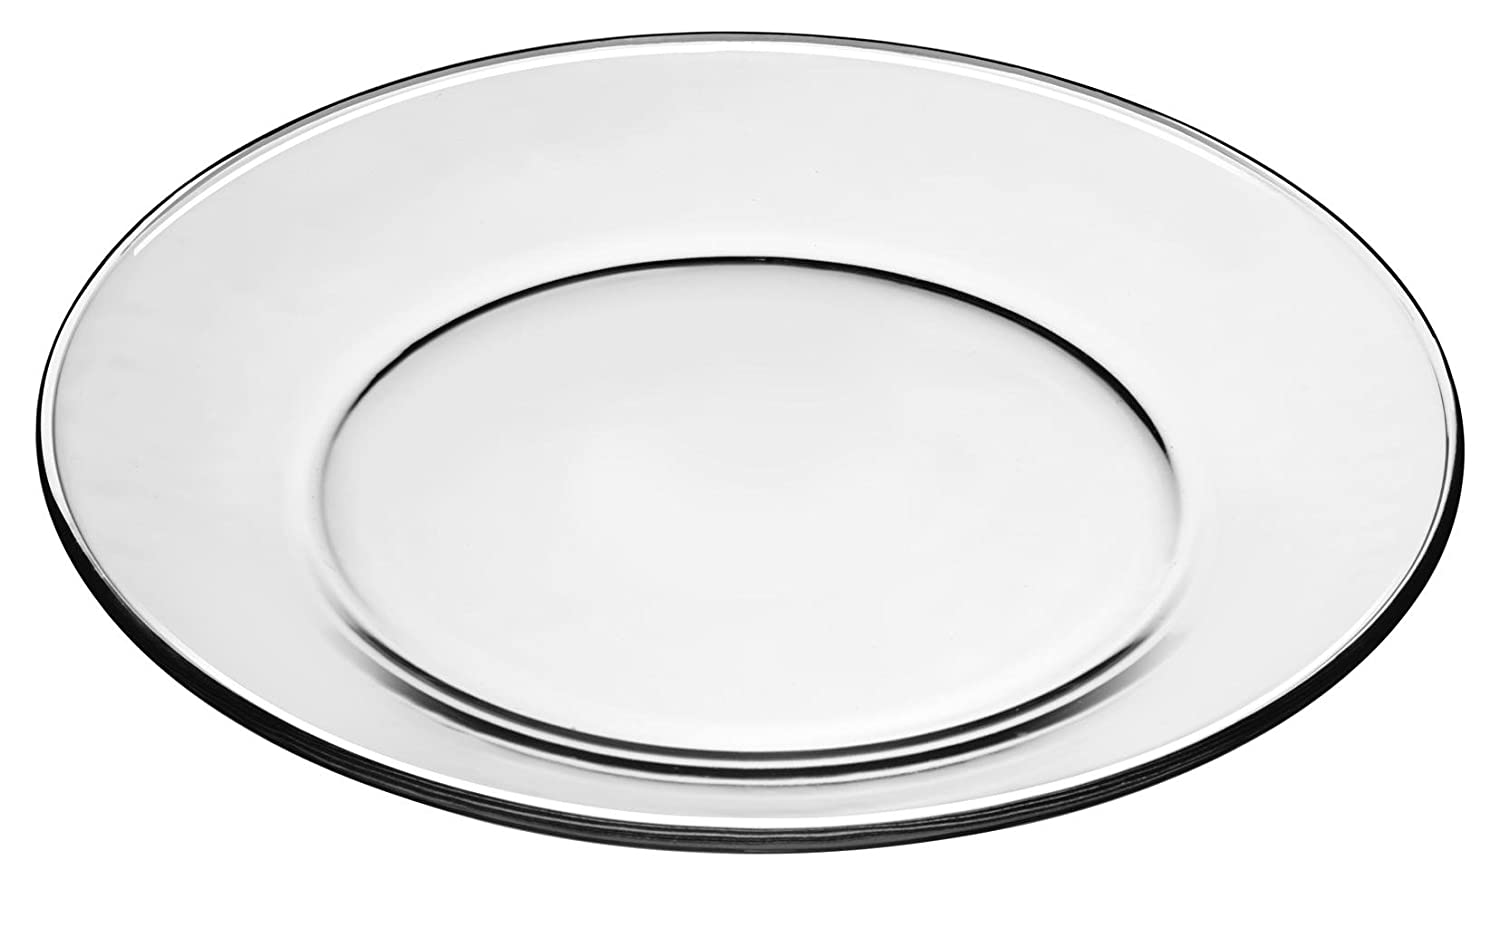 Libbey Crisa Moderno Dinner Plate 10-1/2-Inch Box of  sc 1 st  Amazon.com & Amazon.com: Dinner Plates: Home \u0026 Kitchen